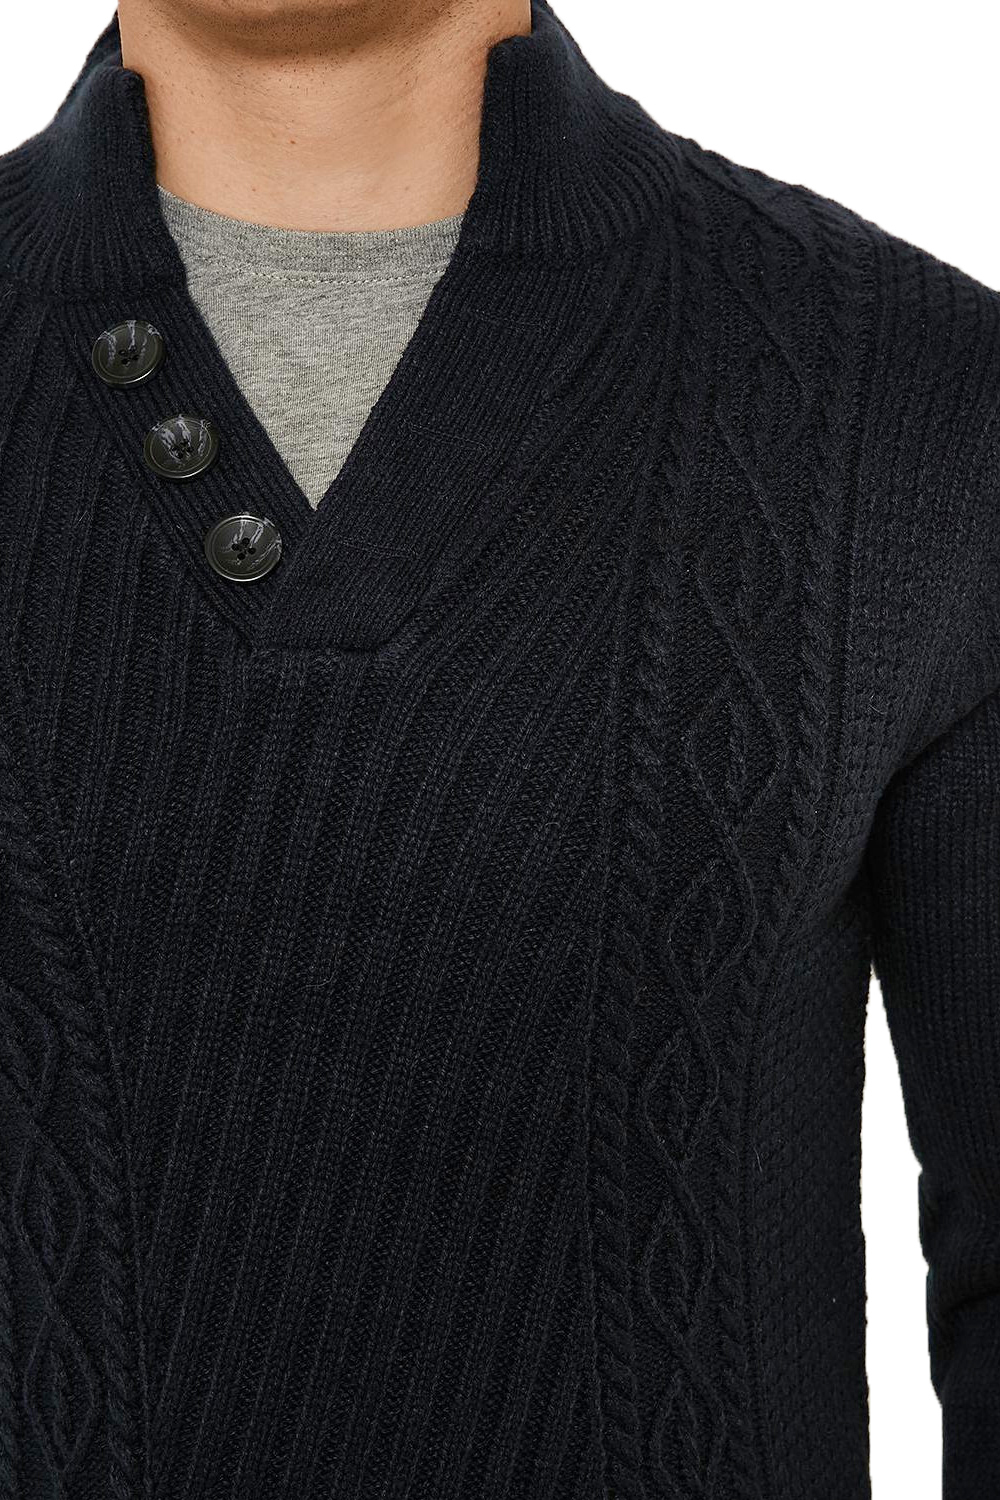 Threadbare-Wray-Mens-Top-Cable-Knited-Designer-Luxurious-Wool-Mix-Raglan-Jumpers thumbnail 12